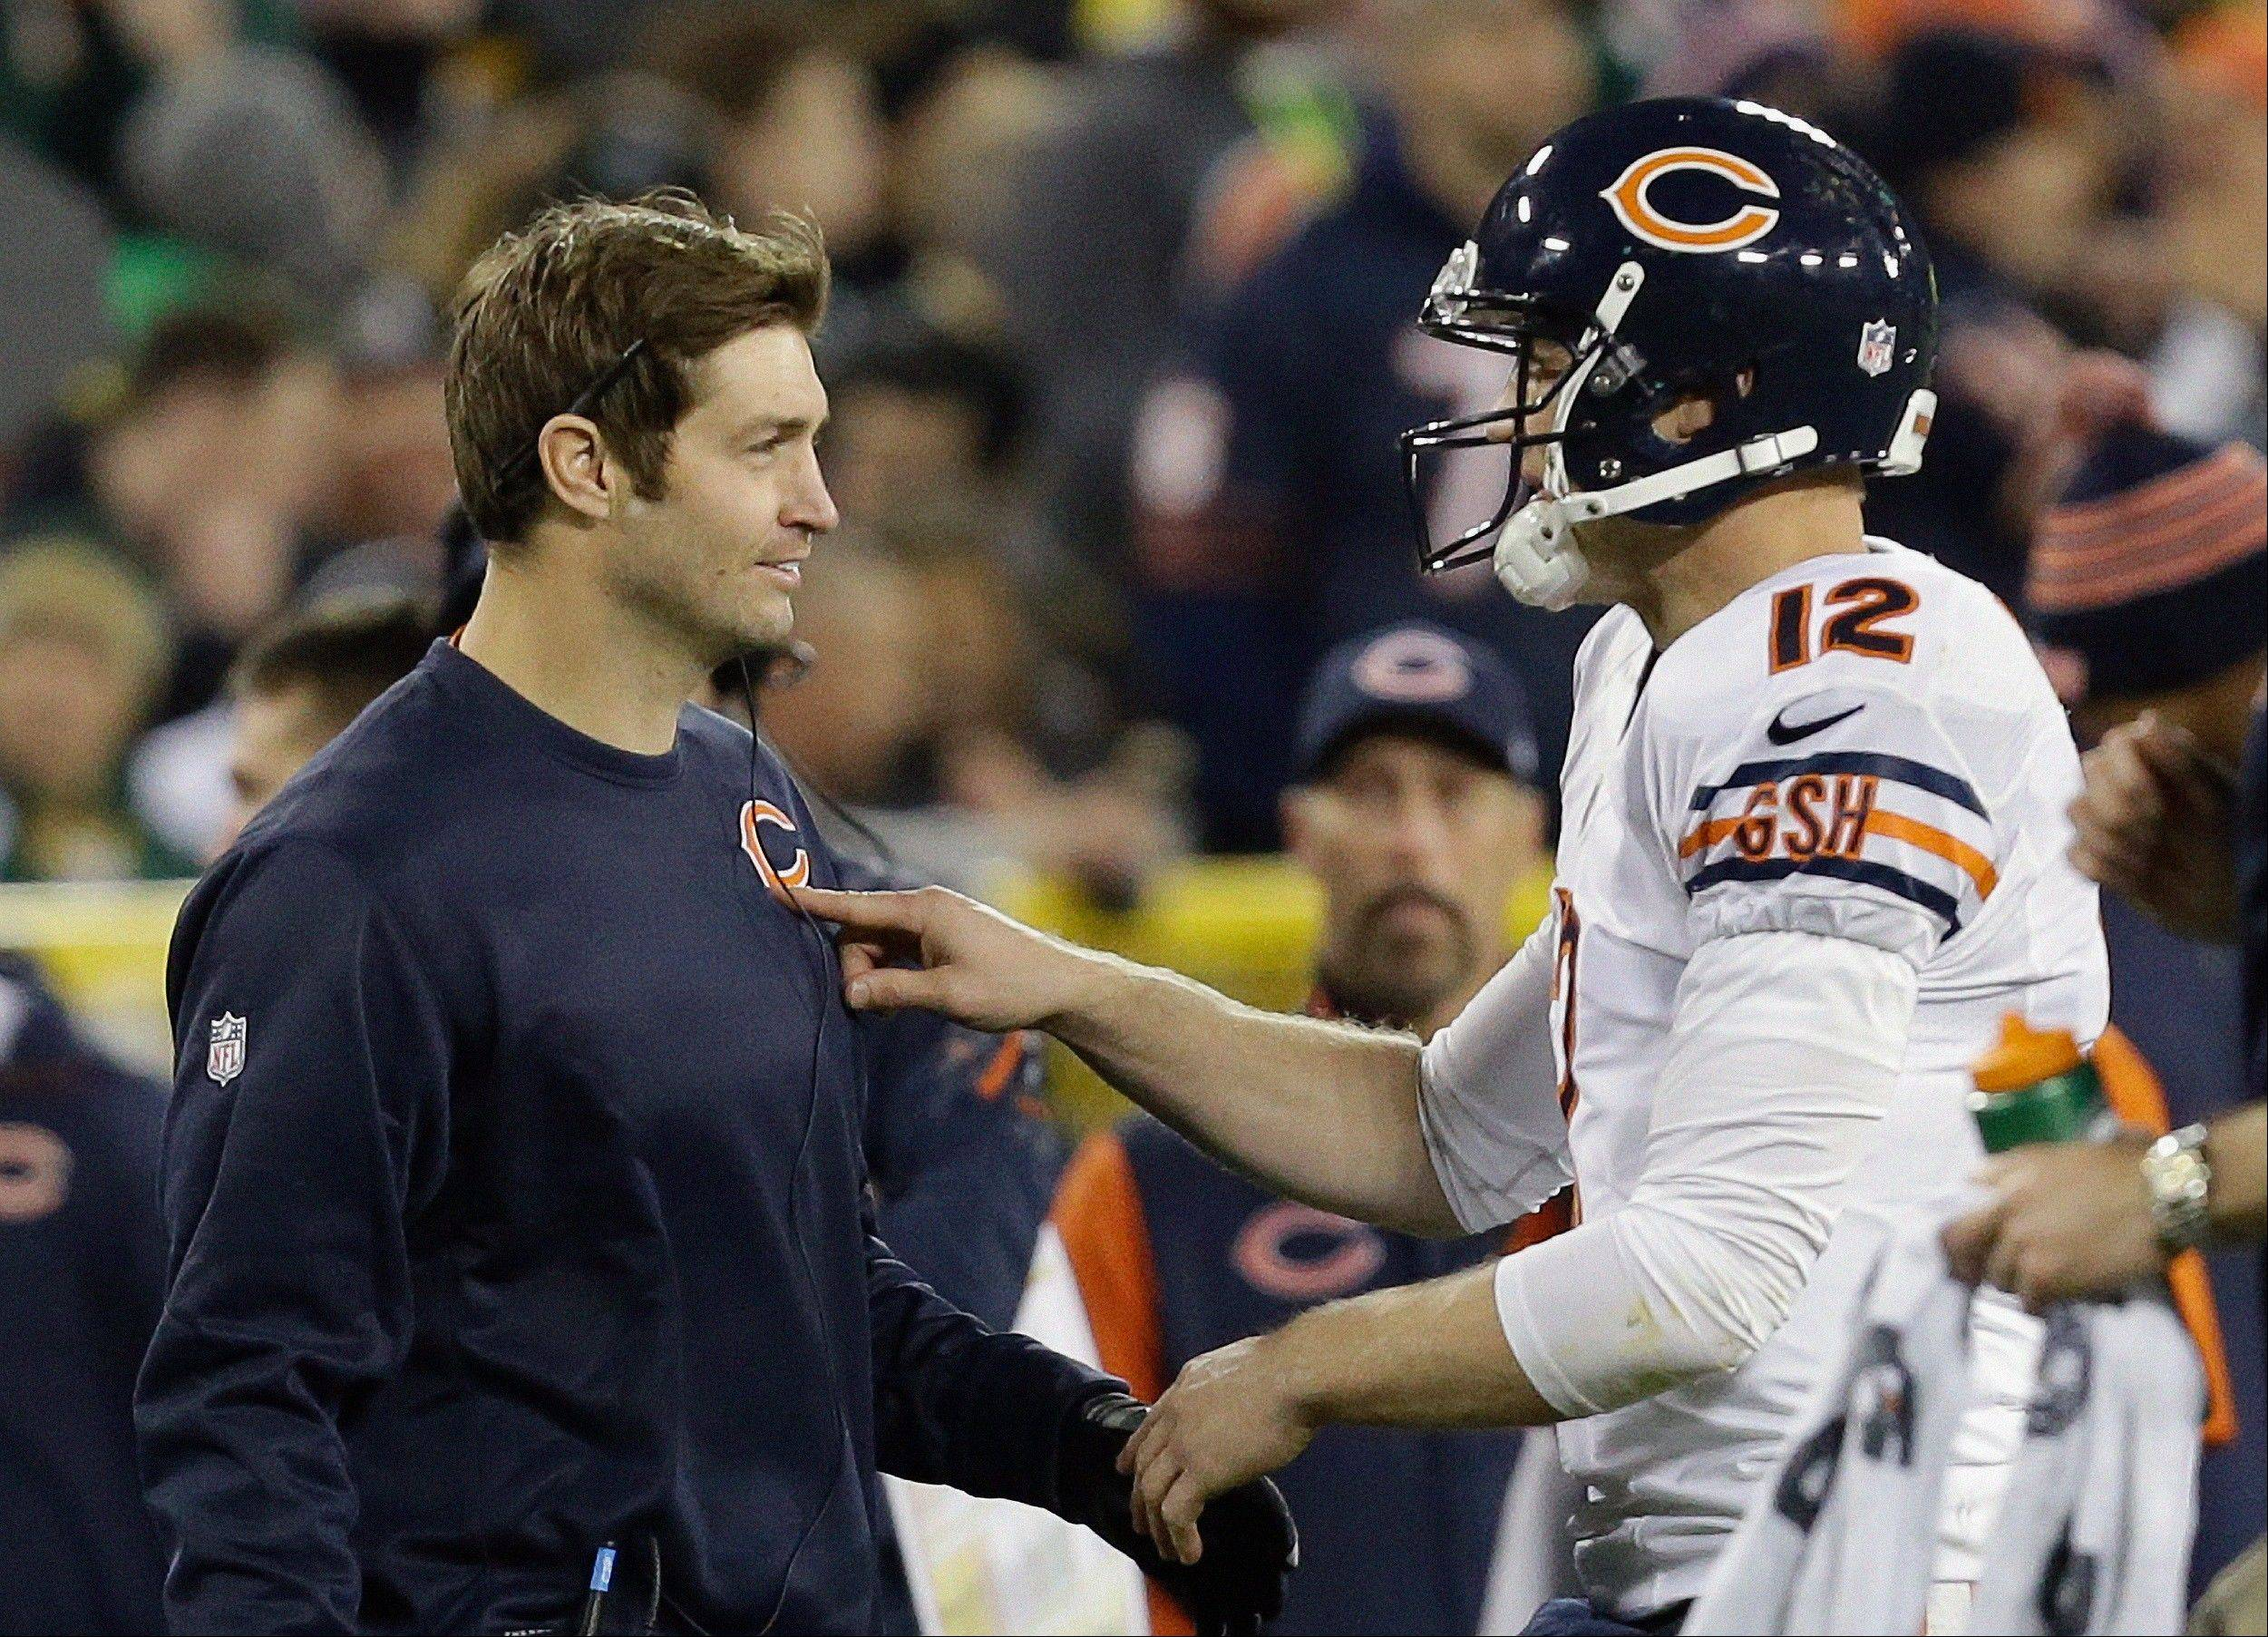 Bears quarterback Jay Cutler, left, is expected to start against the Detroit Lions on Sunday. Josh McCown (12), led the Bears to a win against Green Bay on Monday.